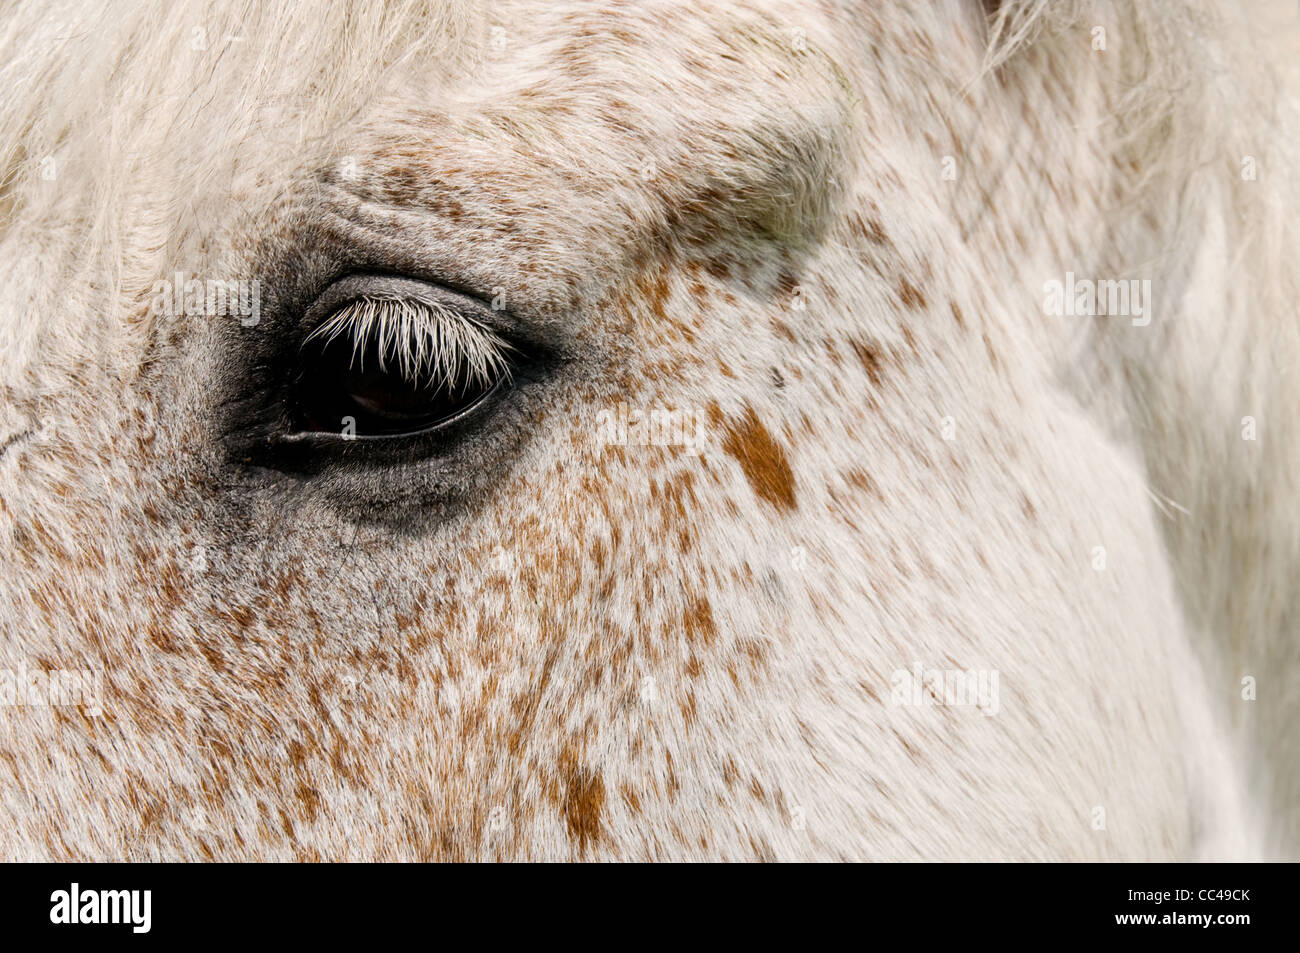 Close up image of a horse's eye - Stock Image